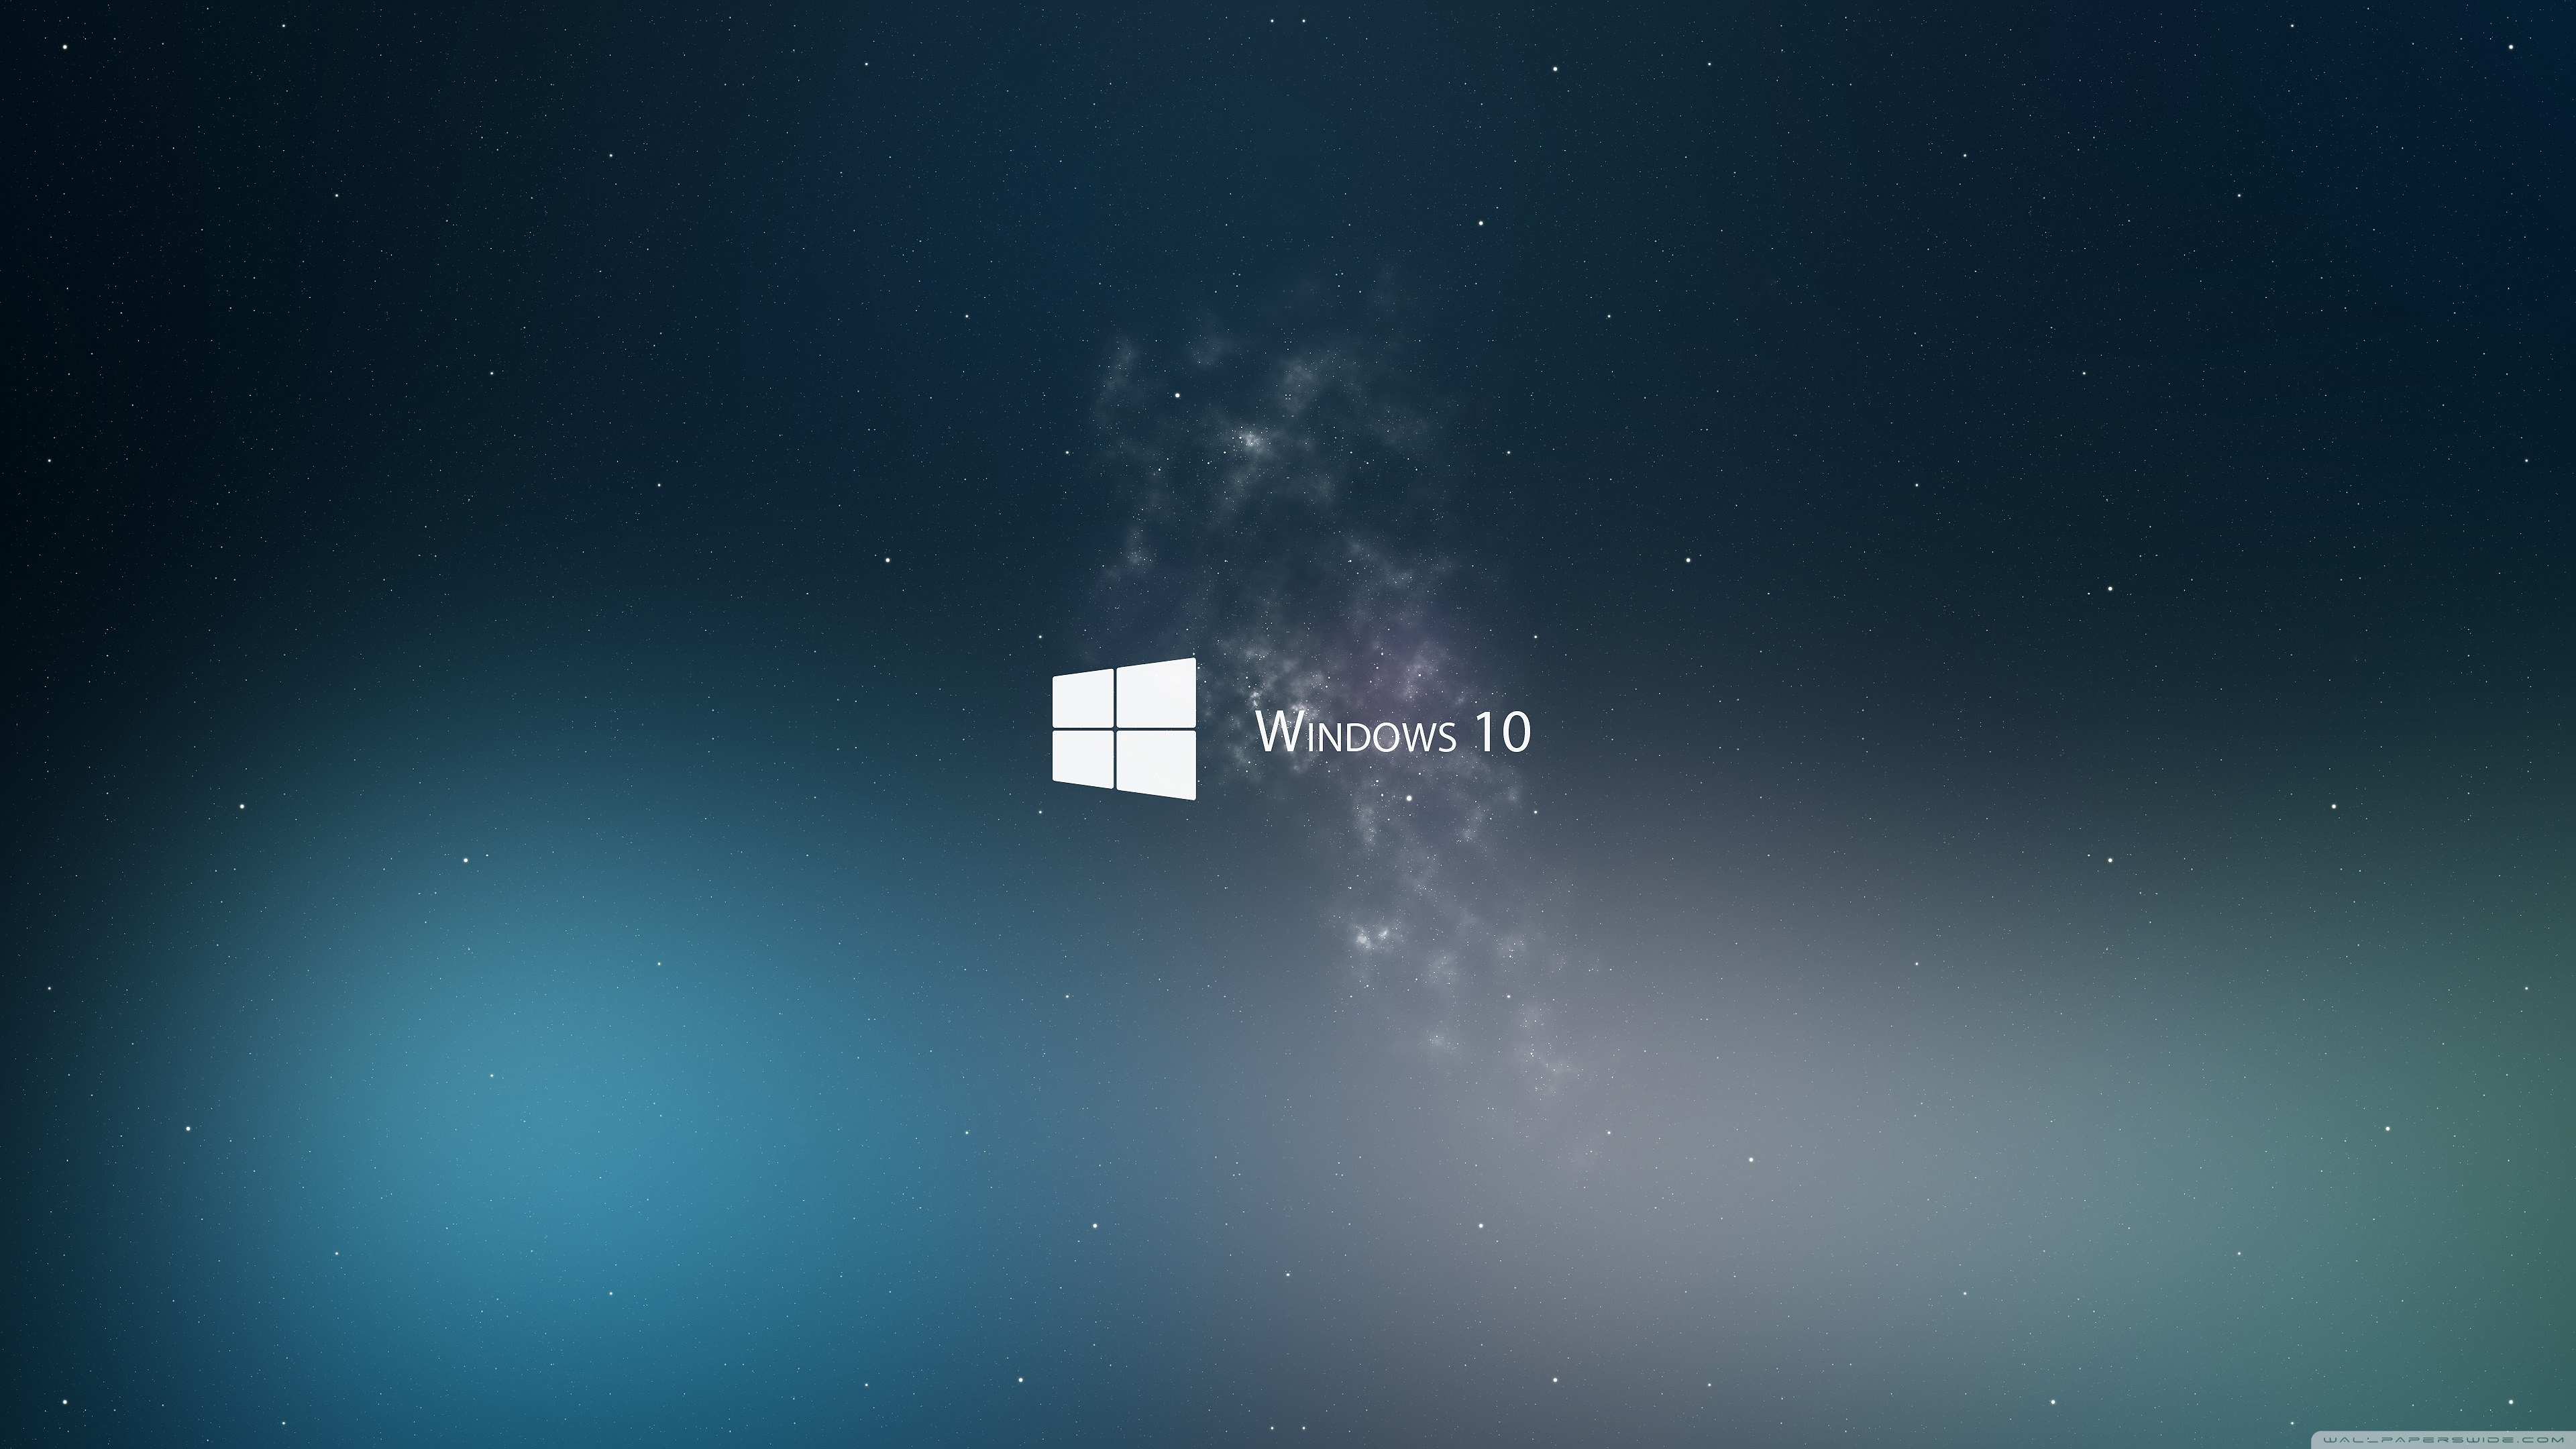 Wallpaper For Windows 7 Professional